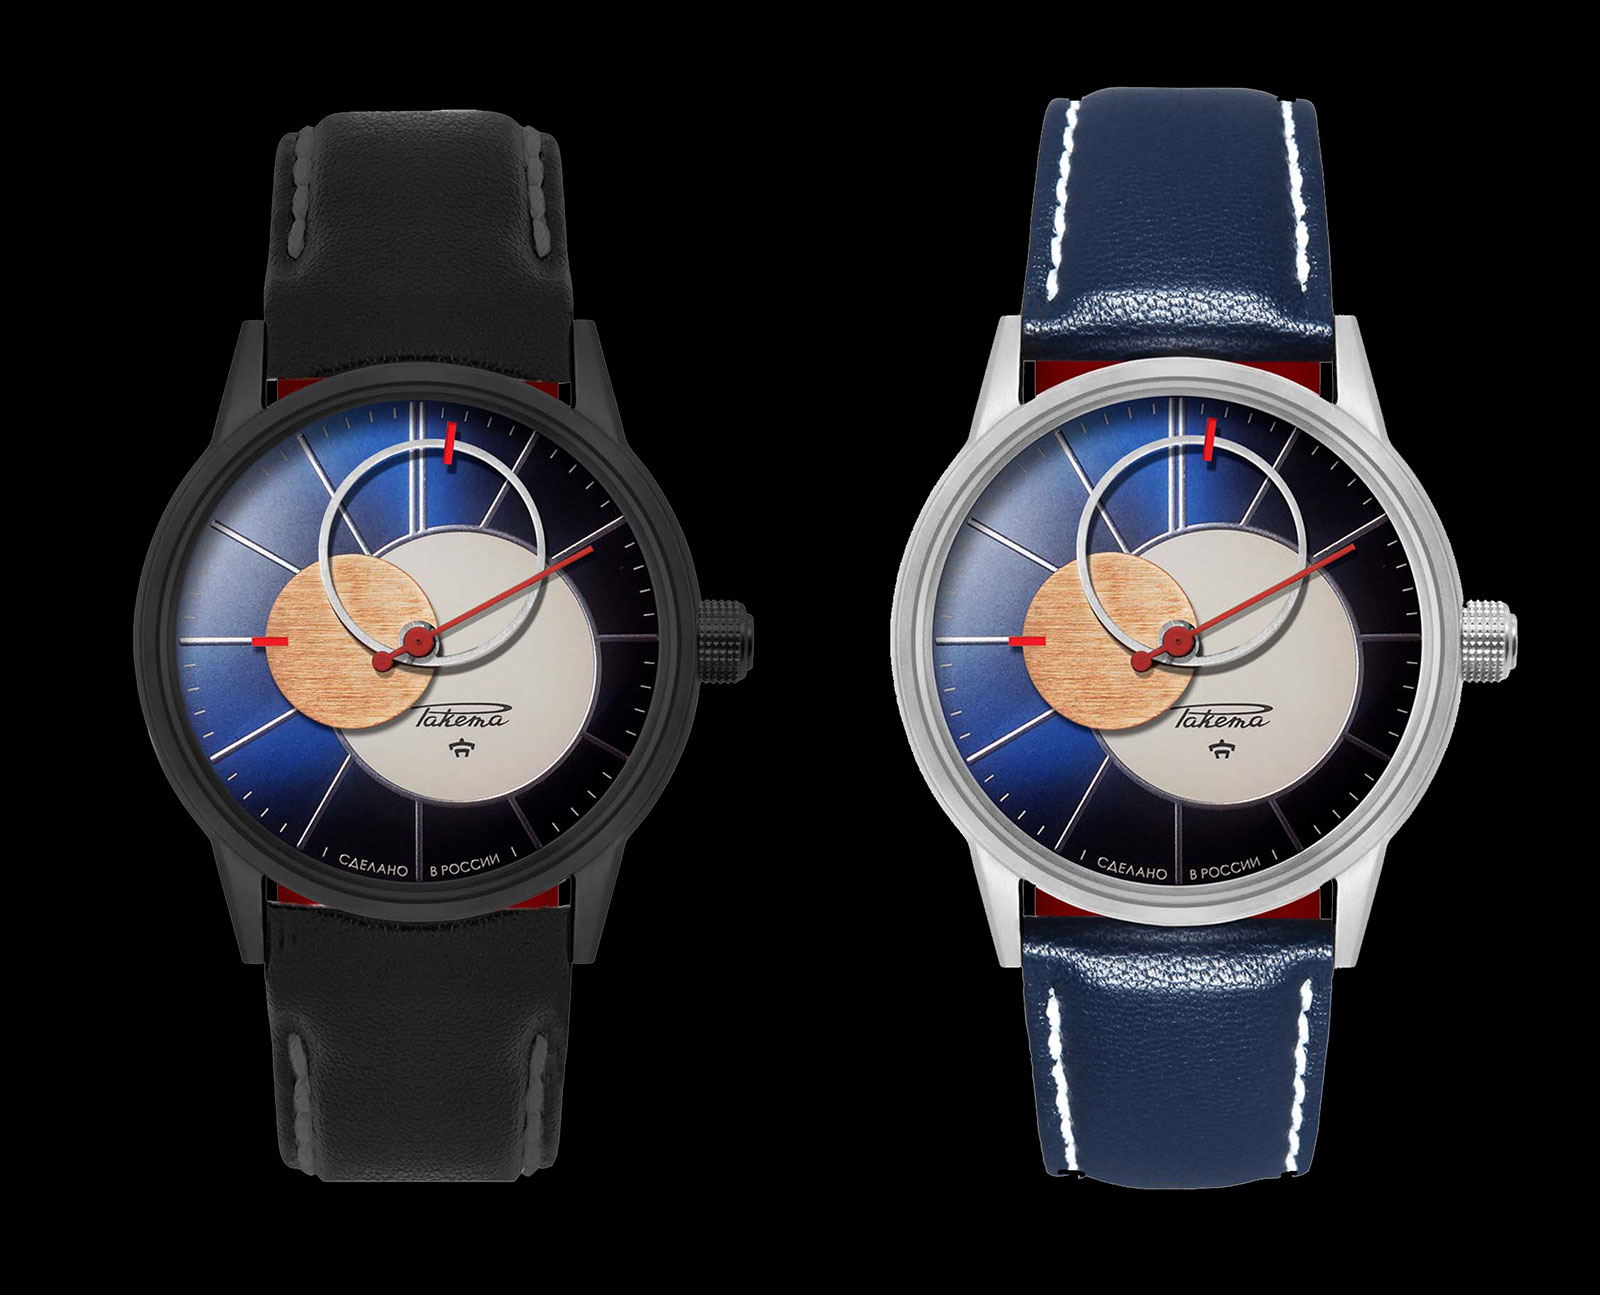 raketa copernicus watch 2